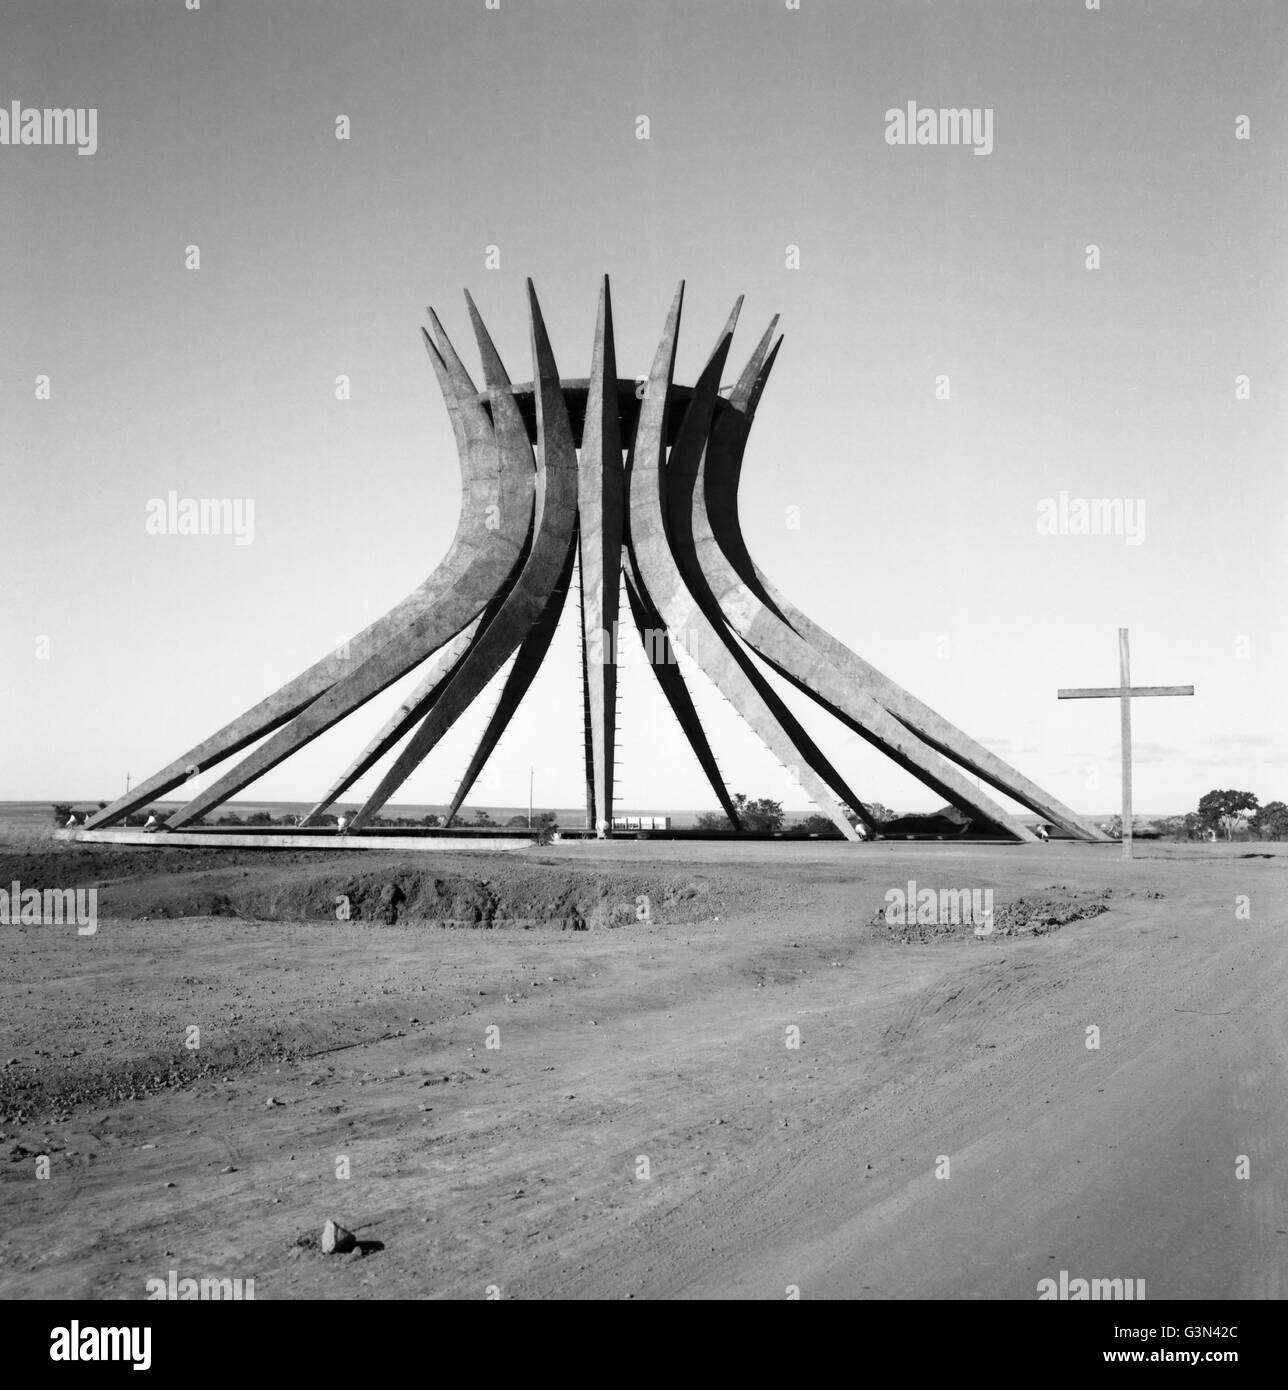 brasilia cathedral construction stock photos brasilia cathedral construction stock images alamy. Black Bedroom Furniture Sets. Home Design Ideas